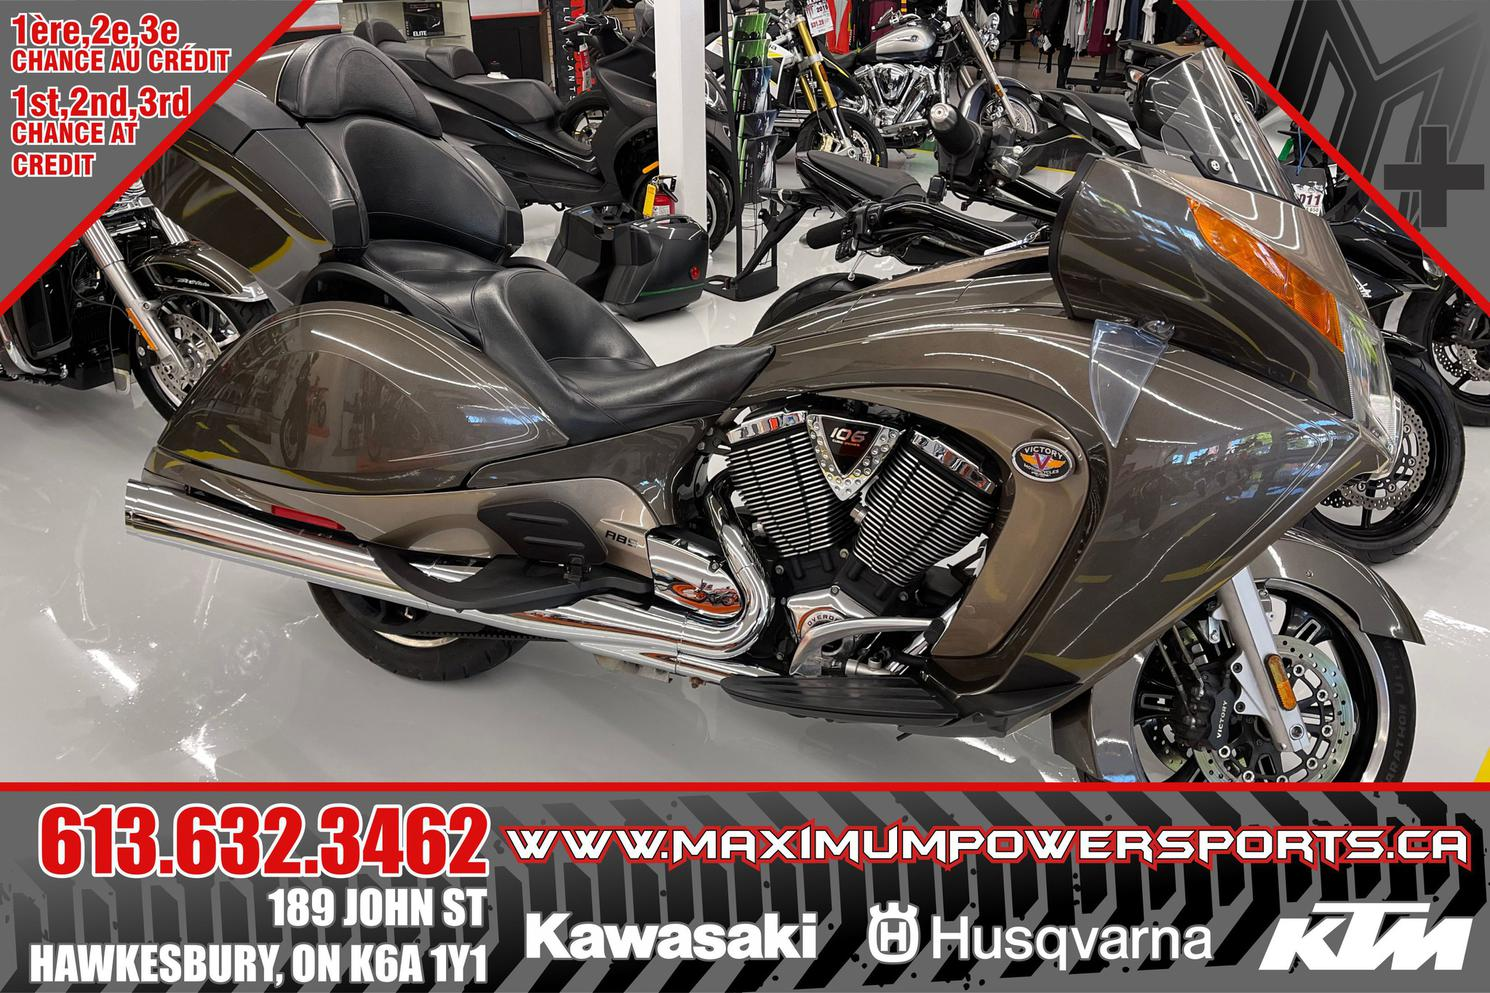 2012 Victory Motorcycles VISION TOUR ABS VISION TOUR ABS 106CC